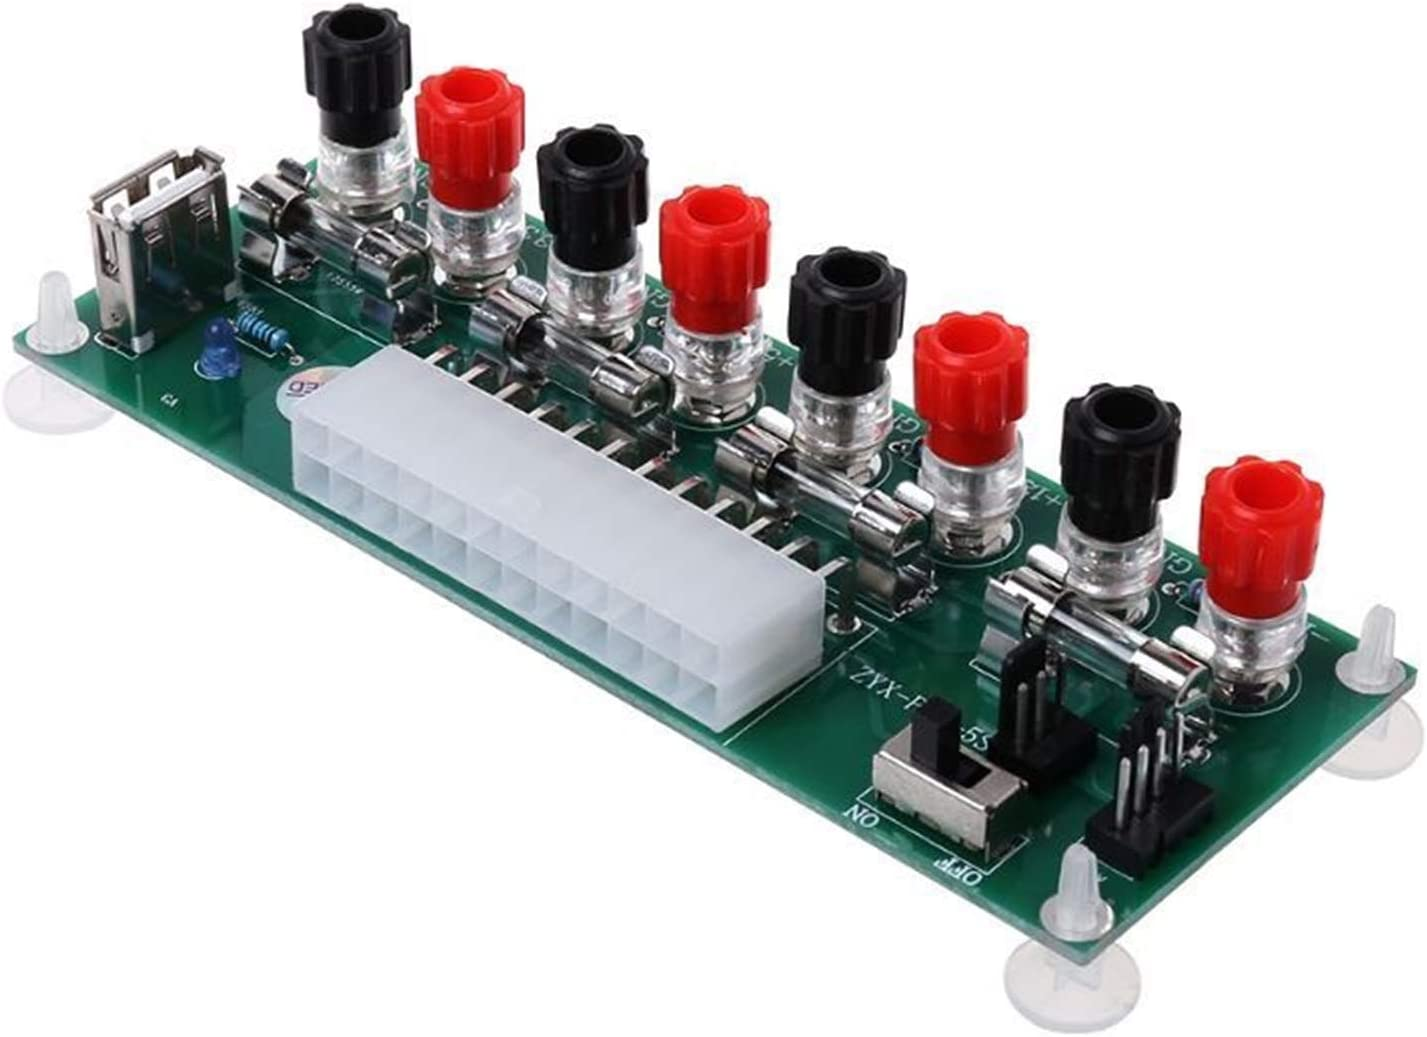 XINGLAI ATX Super intense SALE Benchtop Computer Max 76% OFF Power Electric Circuit Supply 24Pi